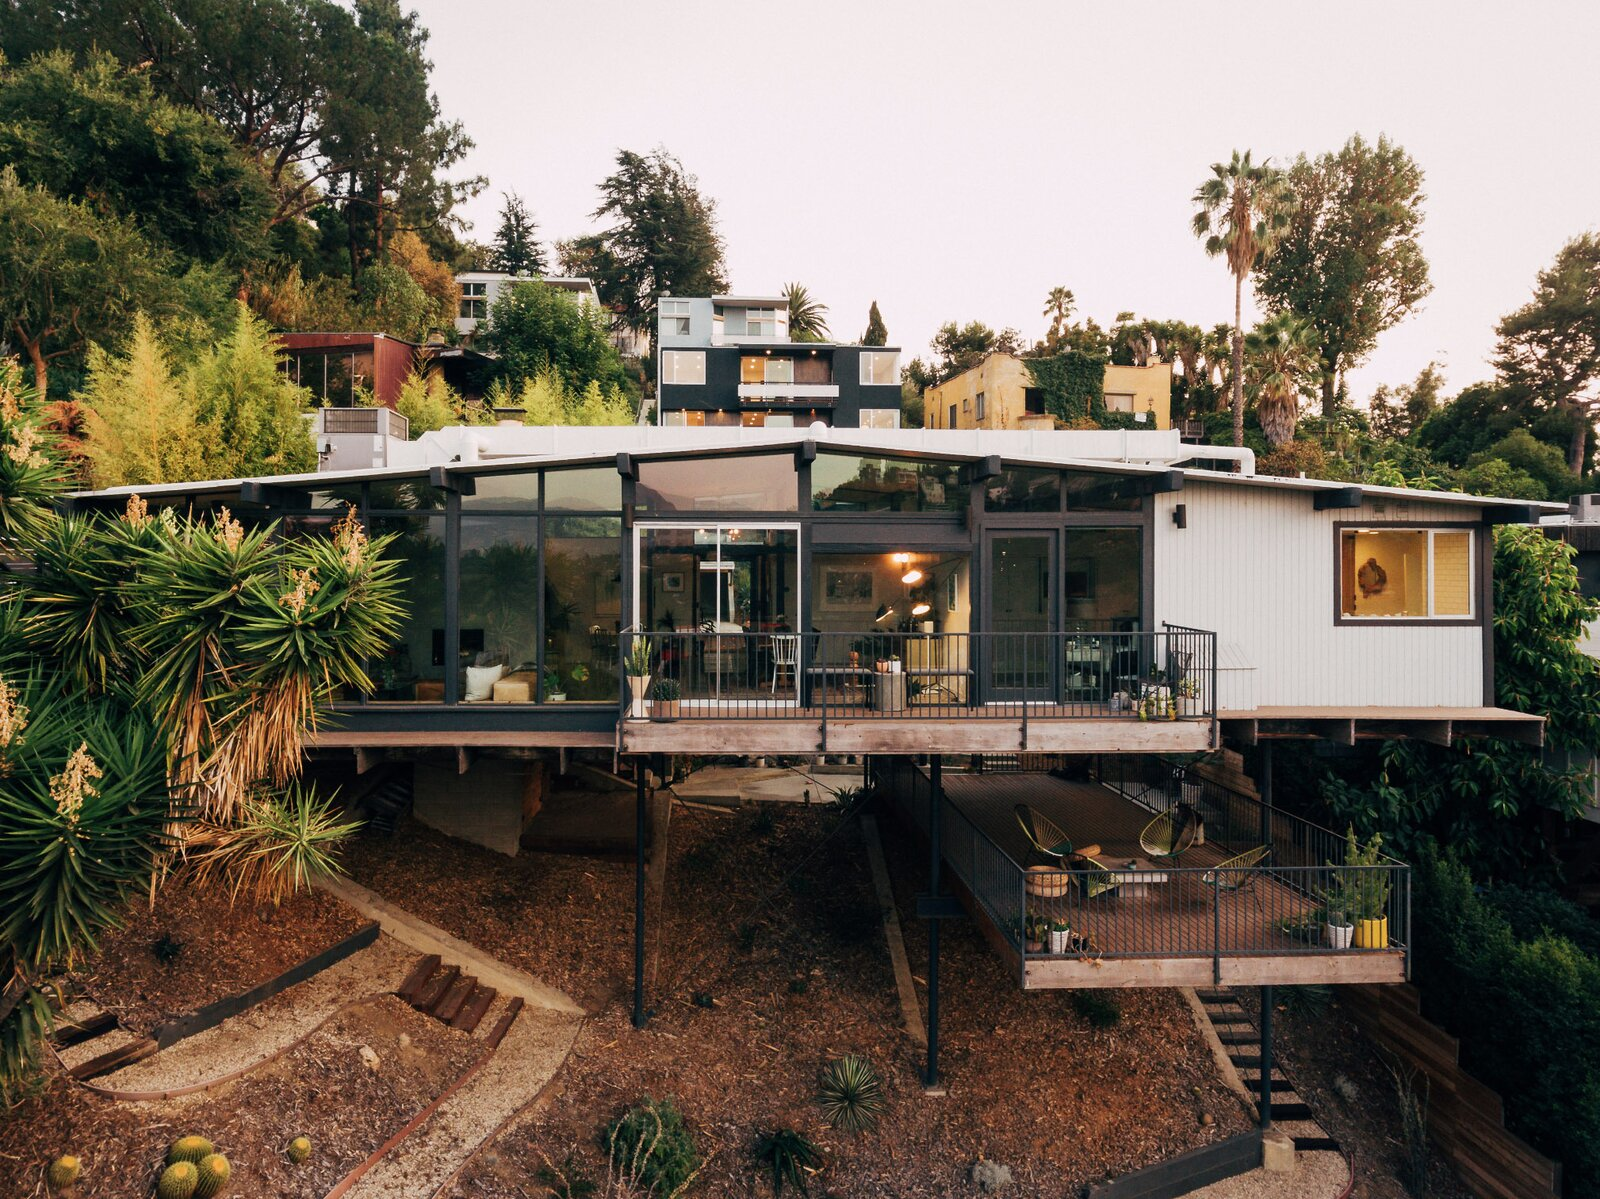 Reportedly one of the first homes built in the neighborhood, this recently listed post-and-beam dwelling is perched along a hillside lot in the Silver Lake area of Los Angeles. The 1962 structure was renovated in 2014 by the team at Tradecraft Real Estate Renovation.  Photo 1 of 16 in Raised on Stilts, a $2.5M Midcentury in Los Angeles Captures Beguiling Views